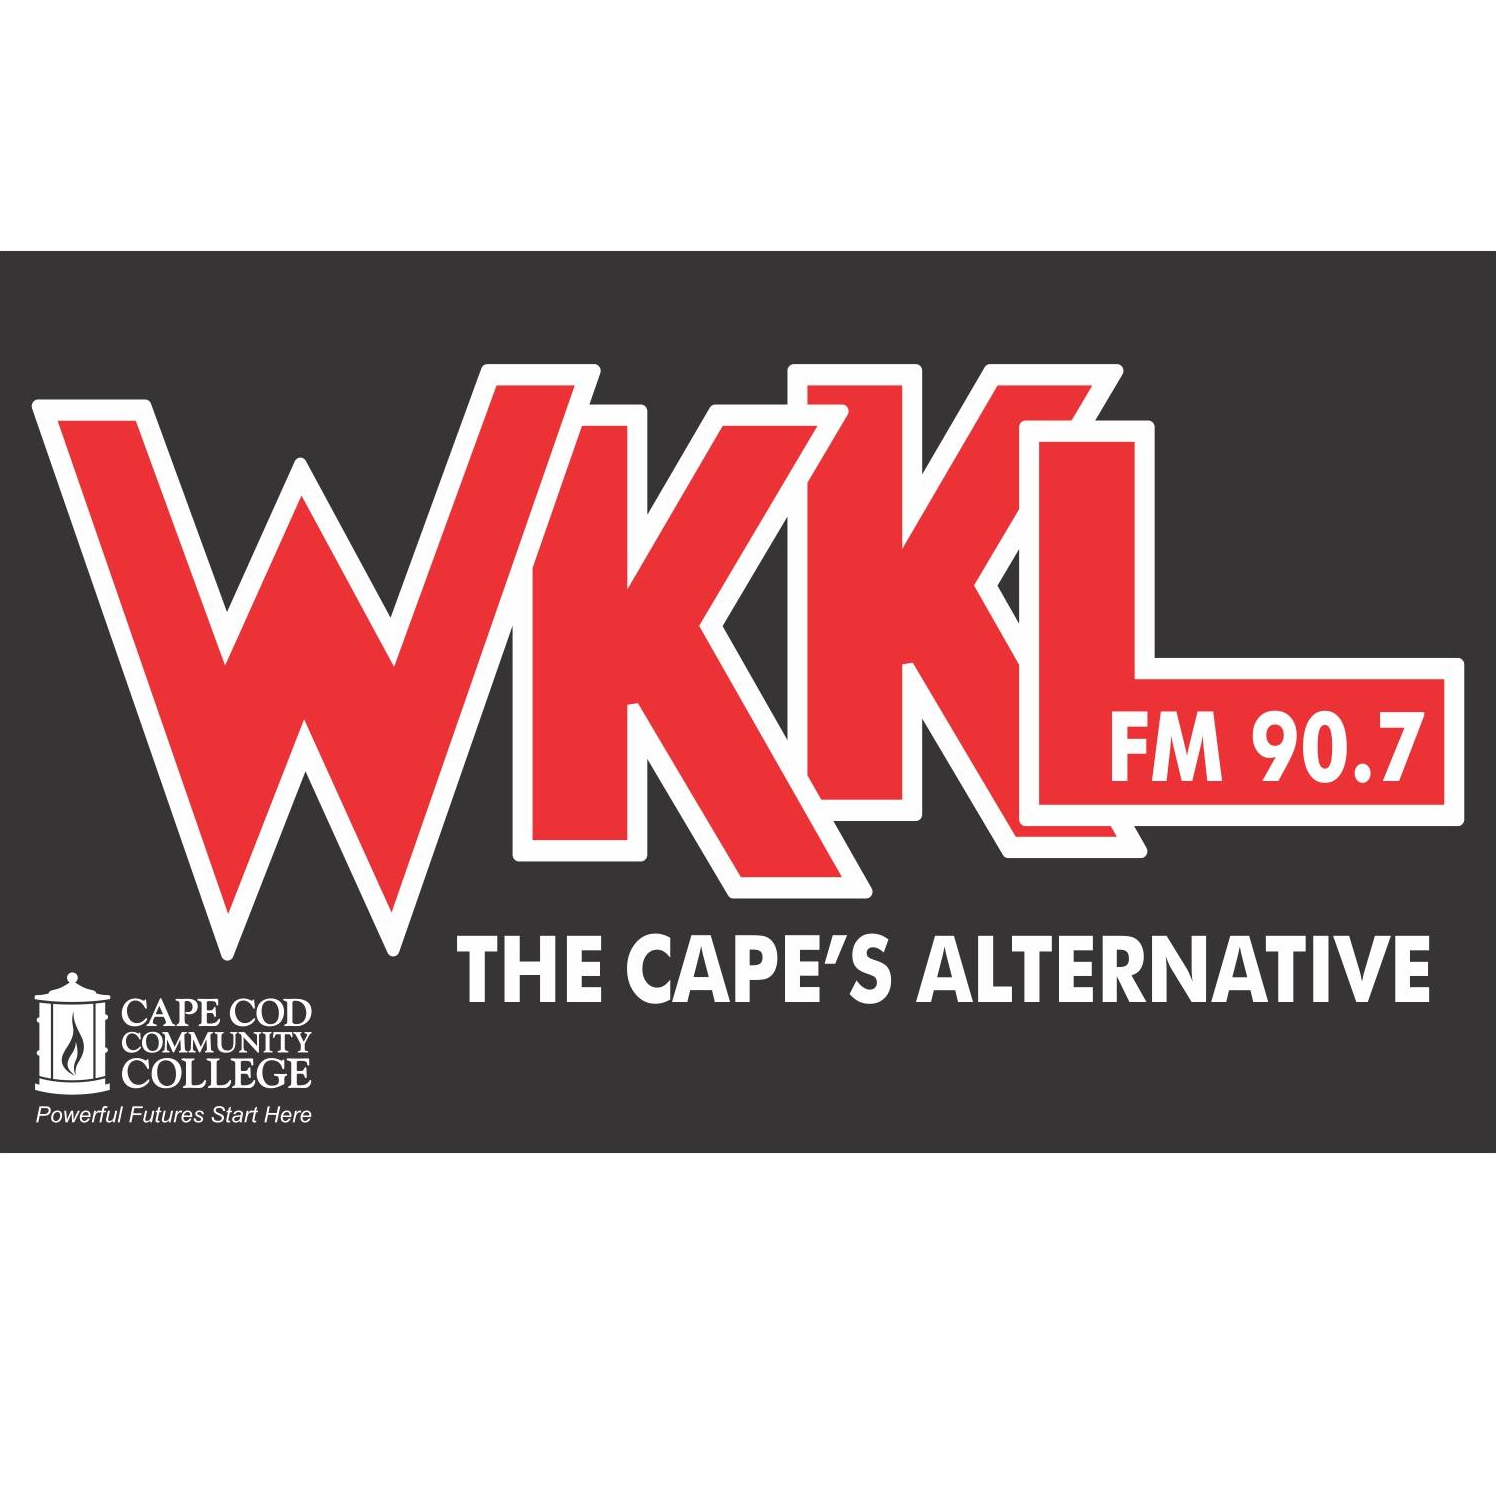 WKKL - Cape Cod Community College